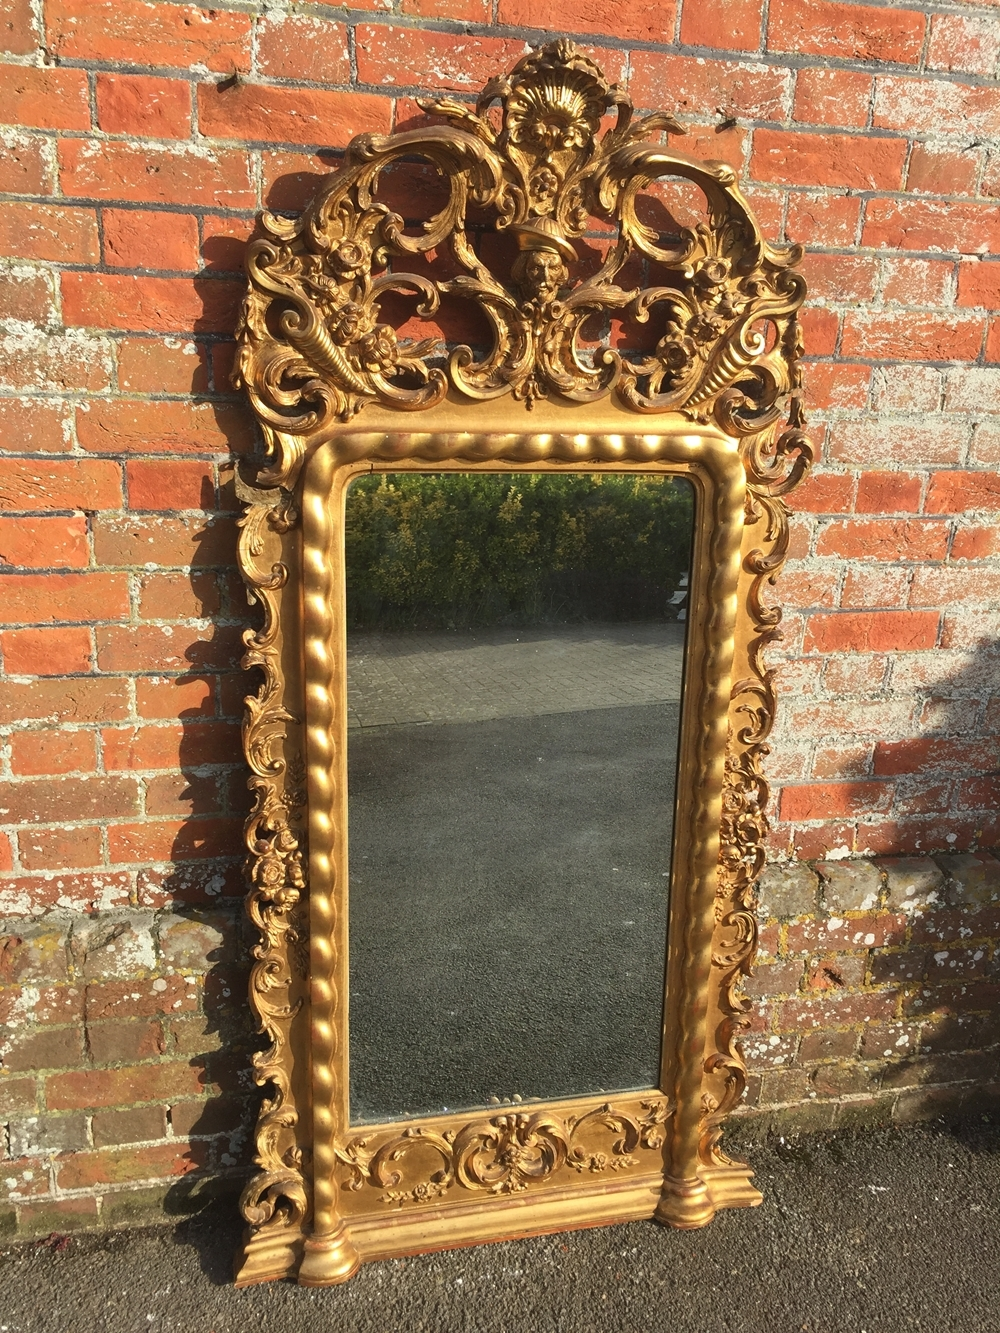 Large Overmantle Mirrors Uk Antique Overmantle Mirrors For Sale Regarding Large Vintage Mirrors For Sale (Image 9 of 15)